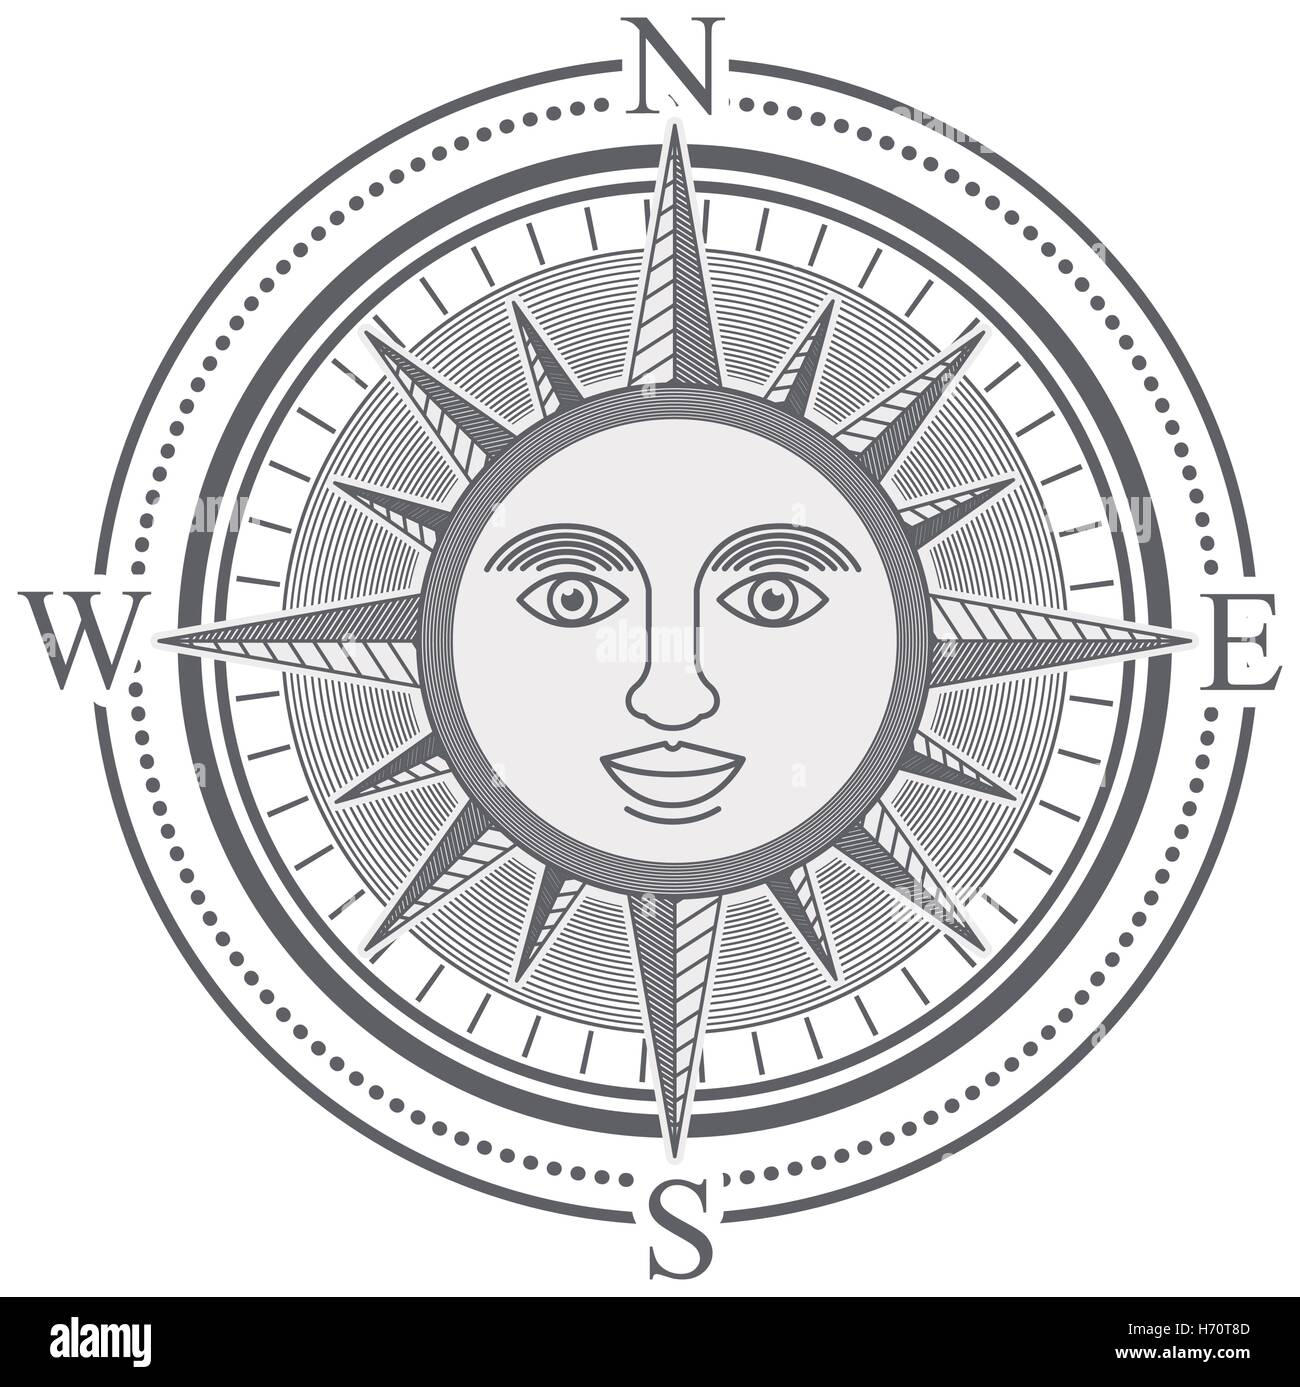 Vintage Compass Rose With The Sun In Center Black And White Design Vector Illustration